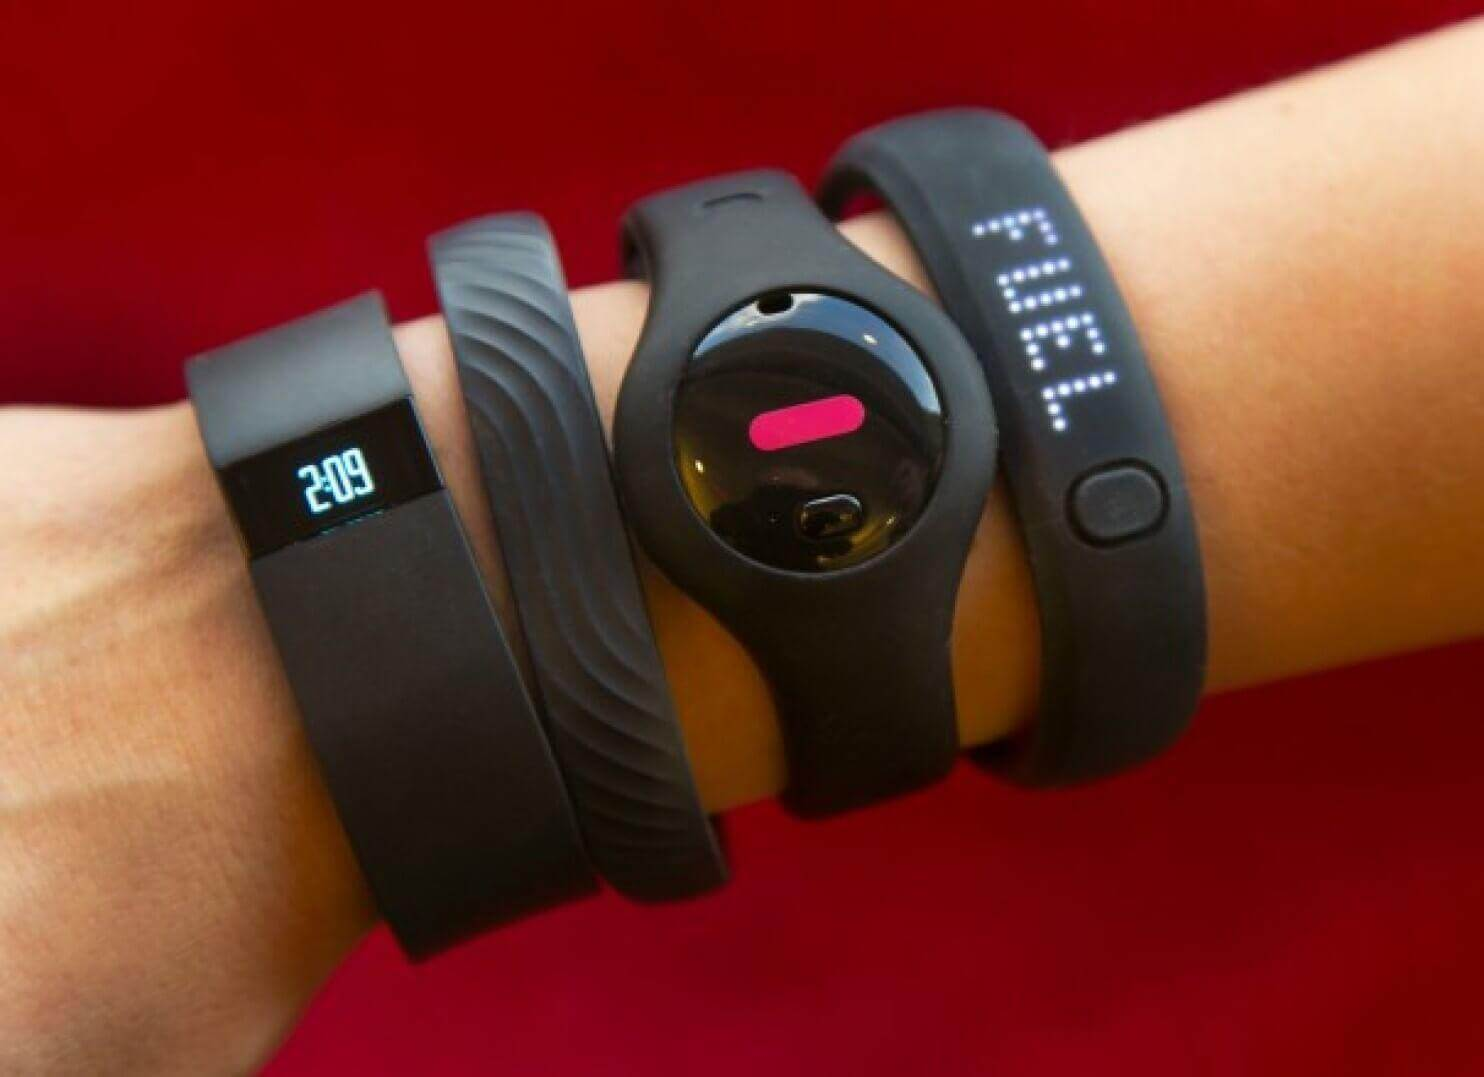 wearable devices are fashion statements